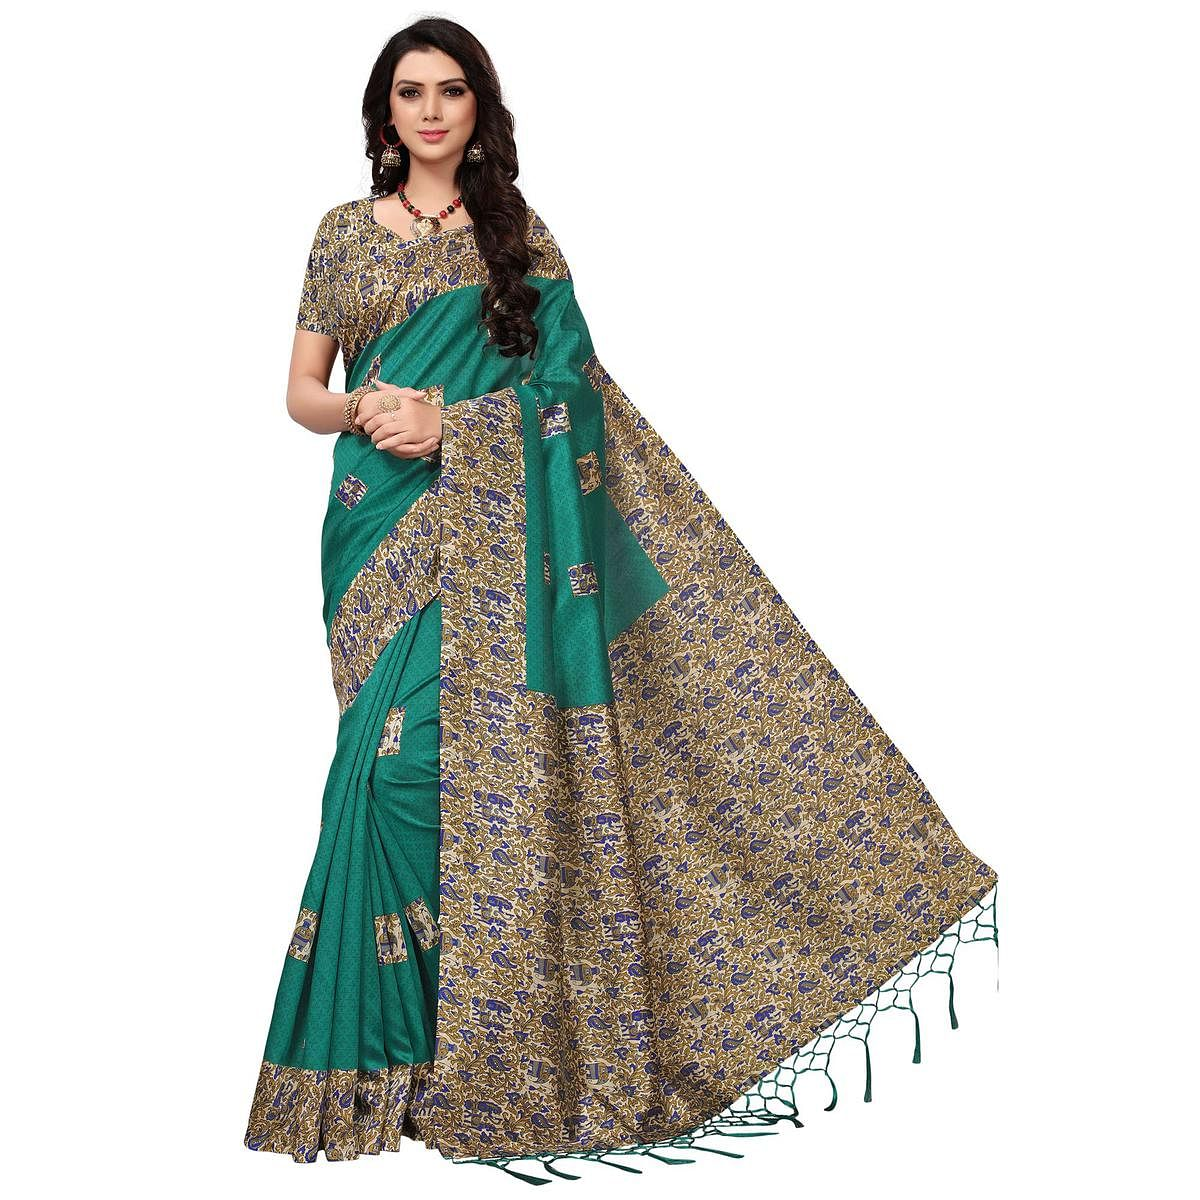 Jazzy Turquoise Green Colored Casual Printed Mysore Art Silk Saree